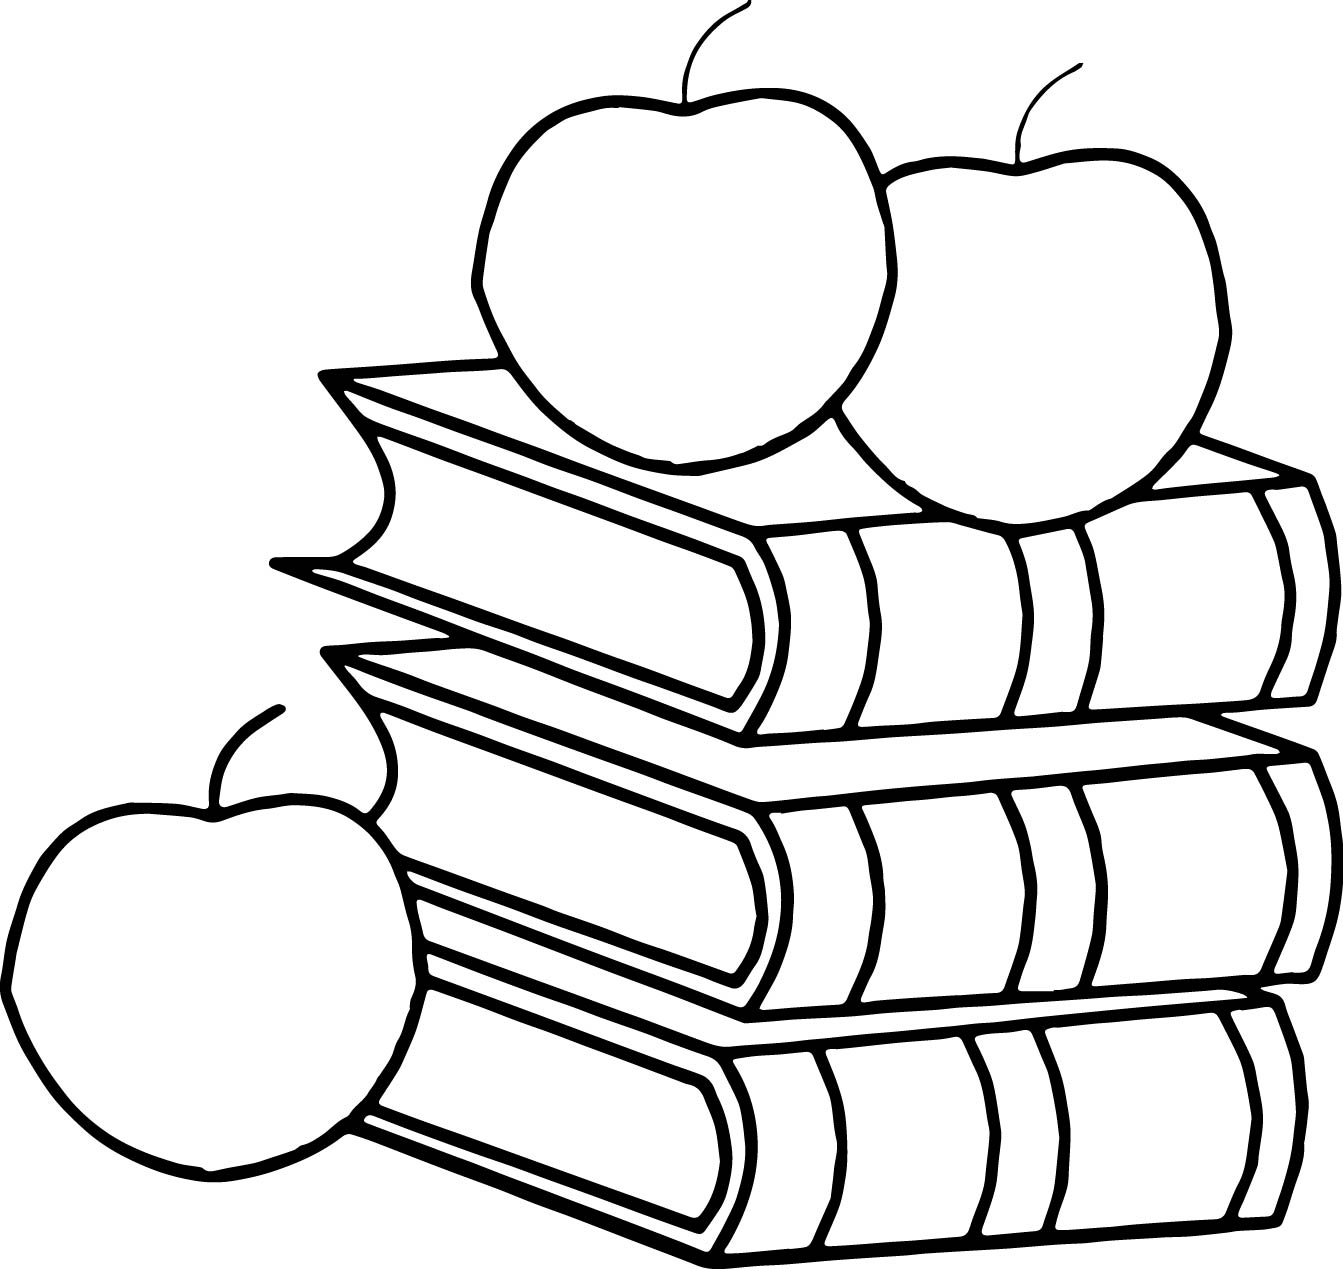 coloring pages for 3rd graders welcome to 3rd grade coloring page wecoloringpagecom graders pages for coloring 3rd